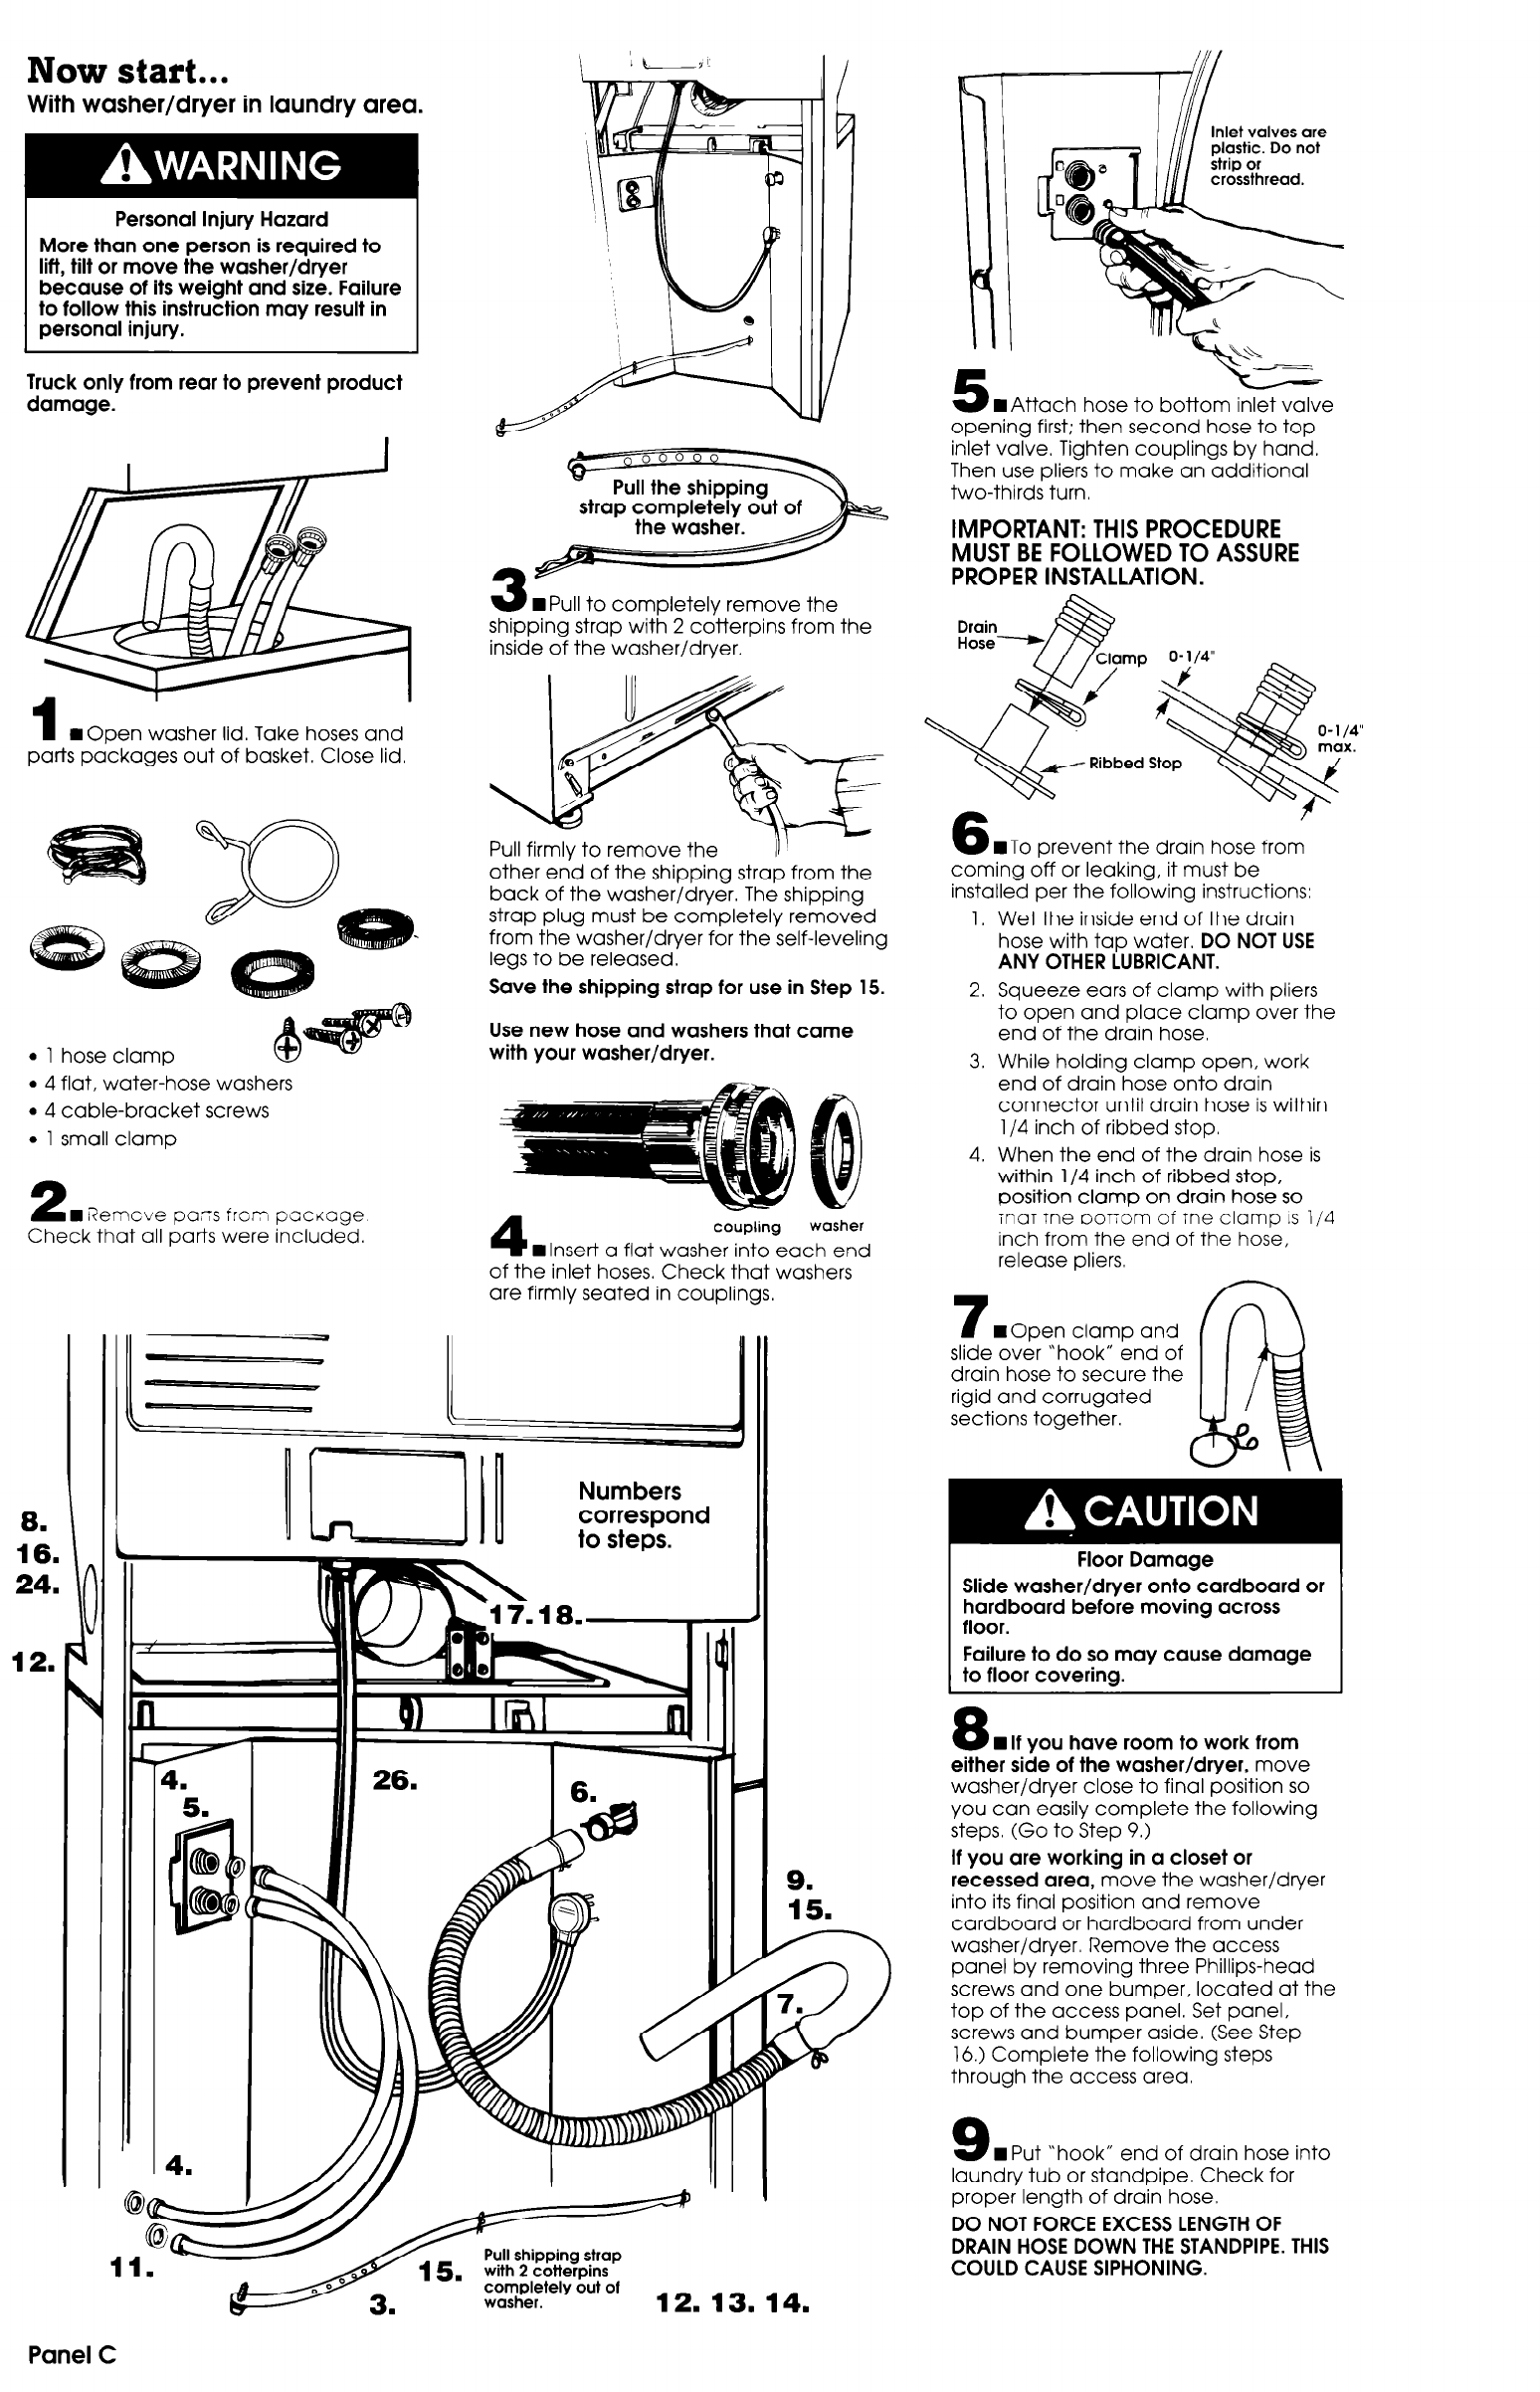 Page 4 of Whirlpool Washer/Dryer 3389591 User Guide